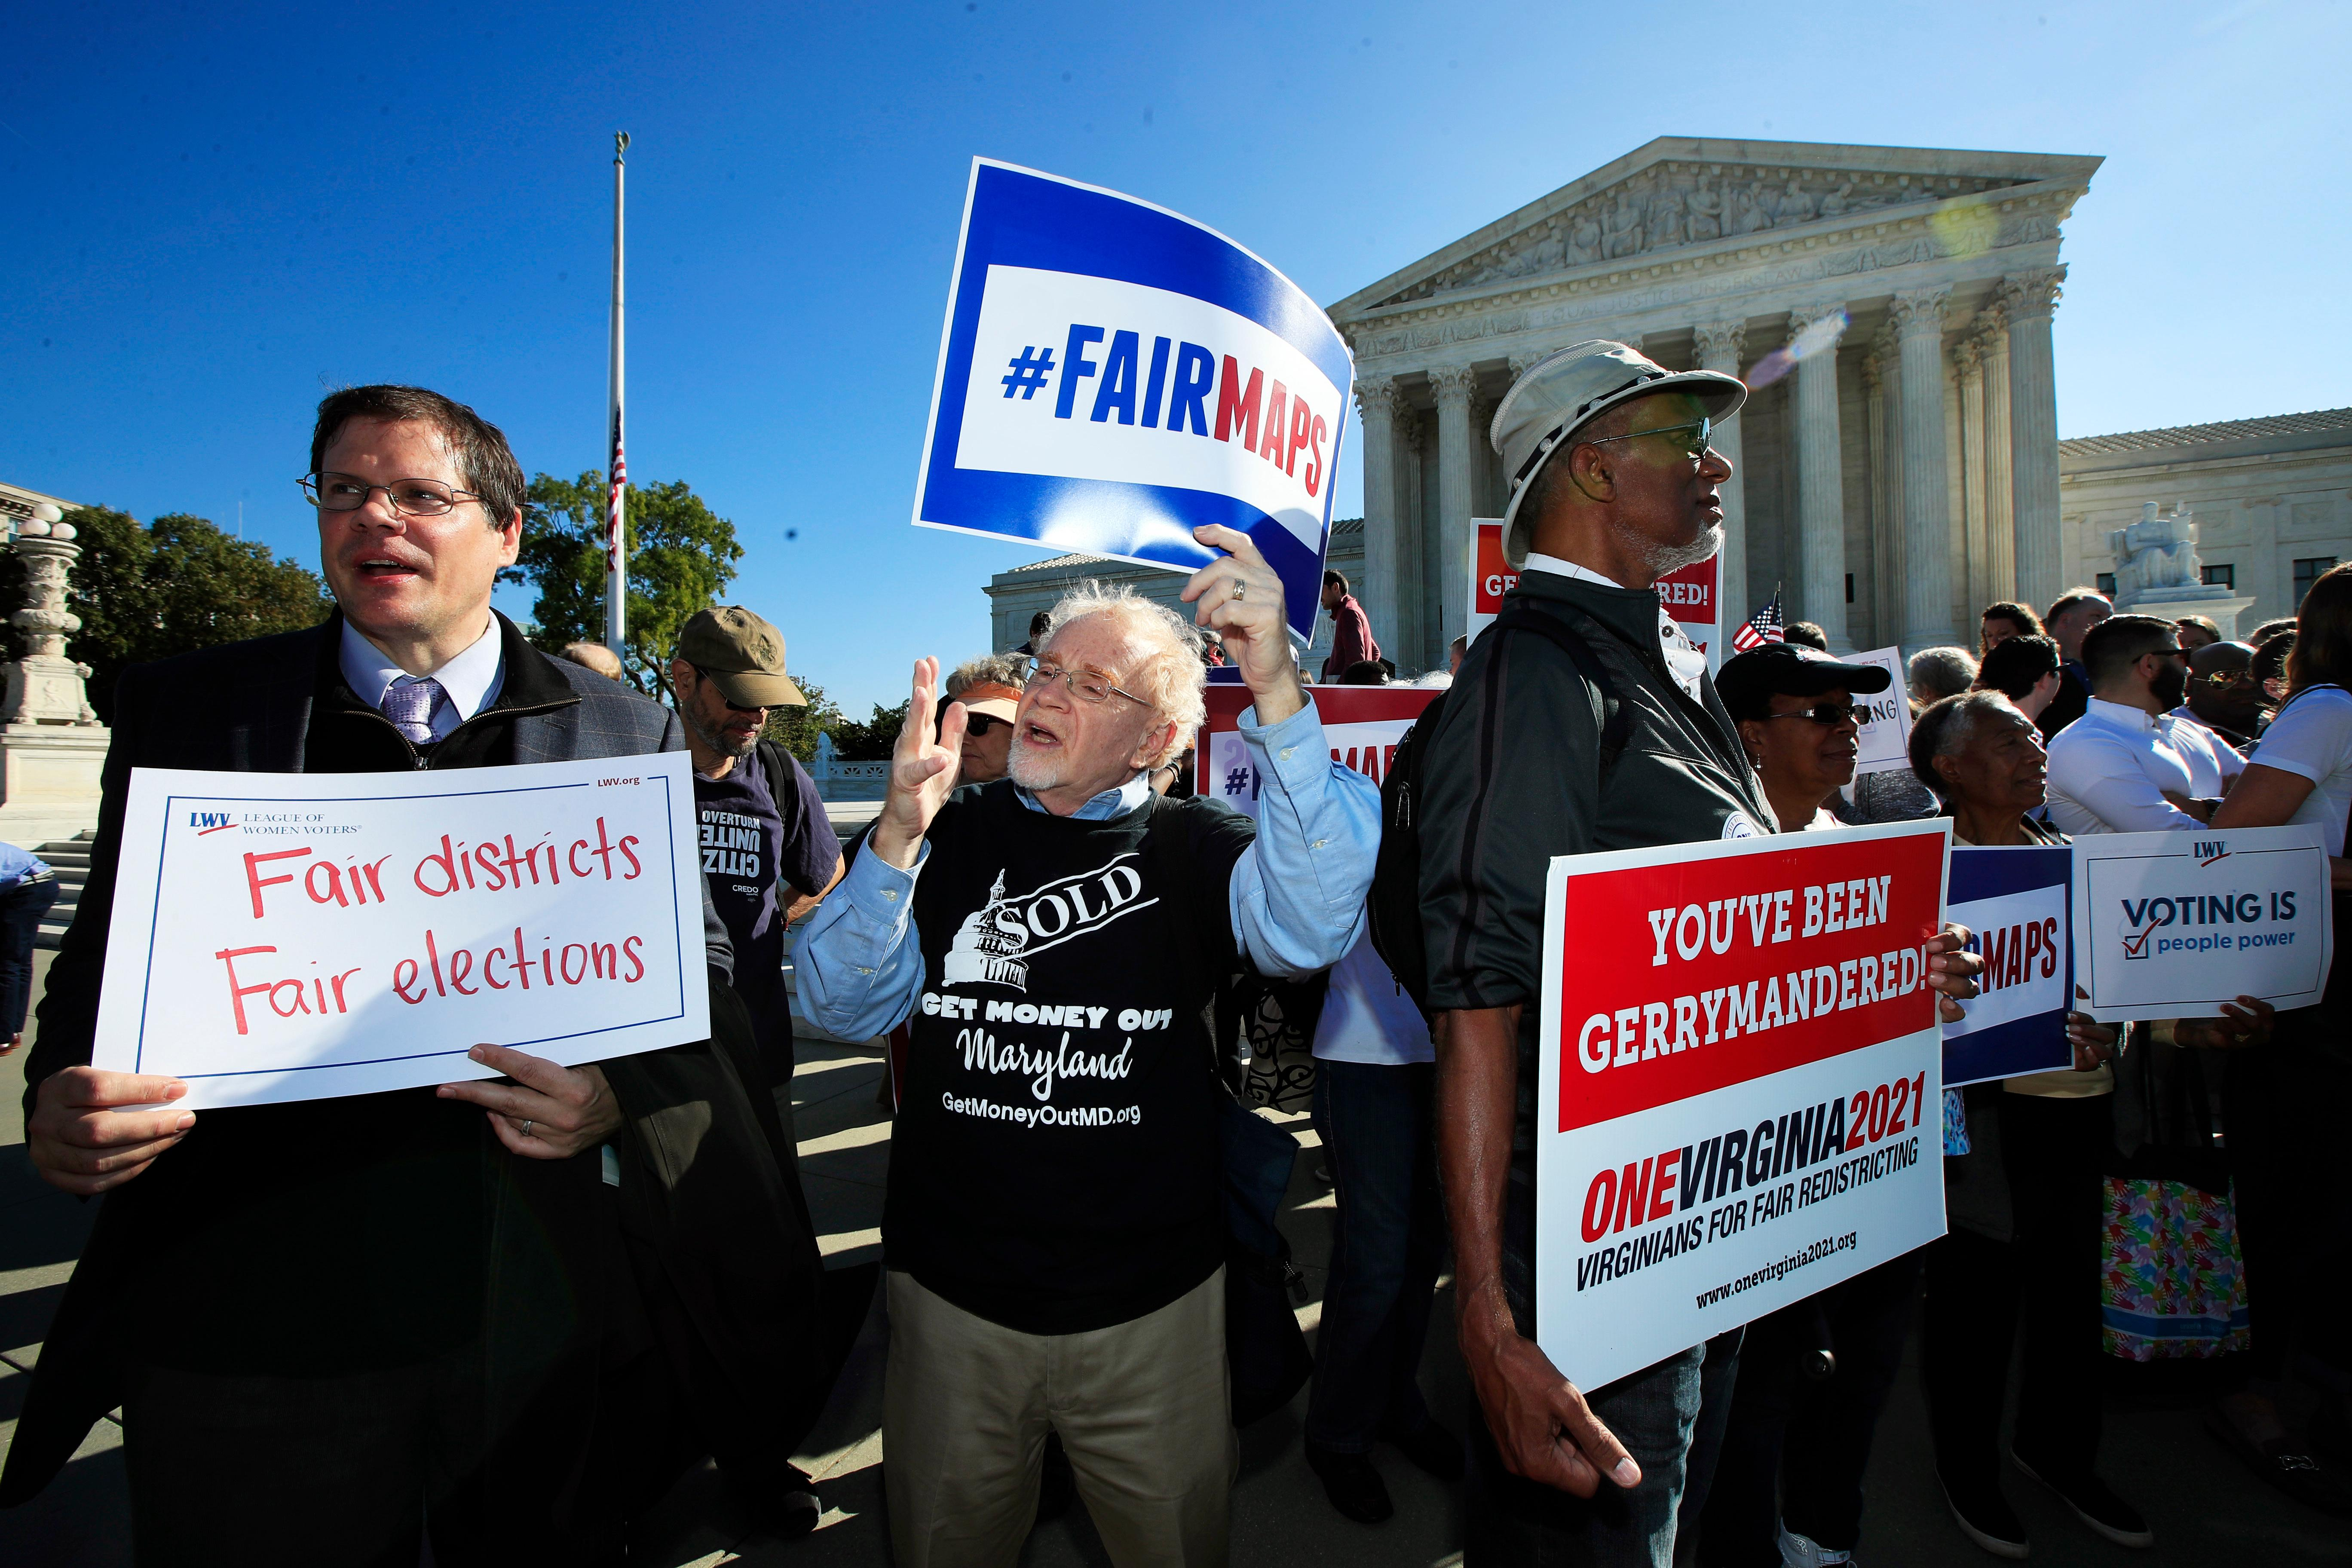 Eric Silberman from Silver Spring, Md., from left, Charlie Cooper from Baltimore, Md., and Clay Wilson from Alexandria, Va., join others in a rally for a fair election outside the U.S. Supreme Court in Washington, Tuesday, Oct. 3, 2017. The Supreme Court hears arguments in a case about political maps in Wisconsin that could affect elections across the country. (AP Photo/Manuel Balce Ceneta)